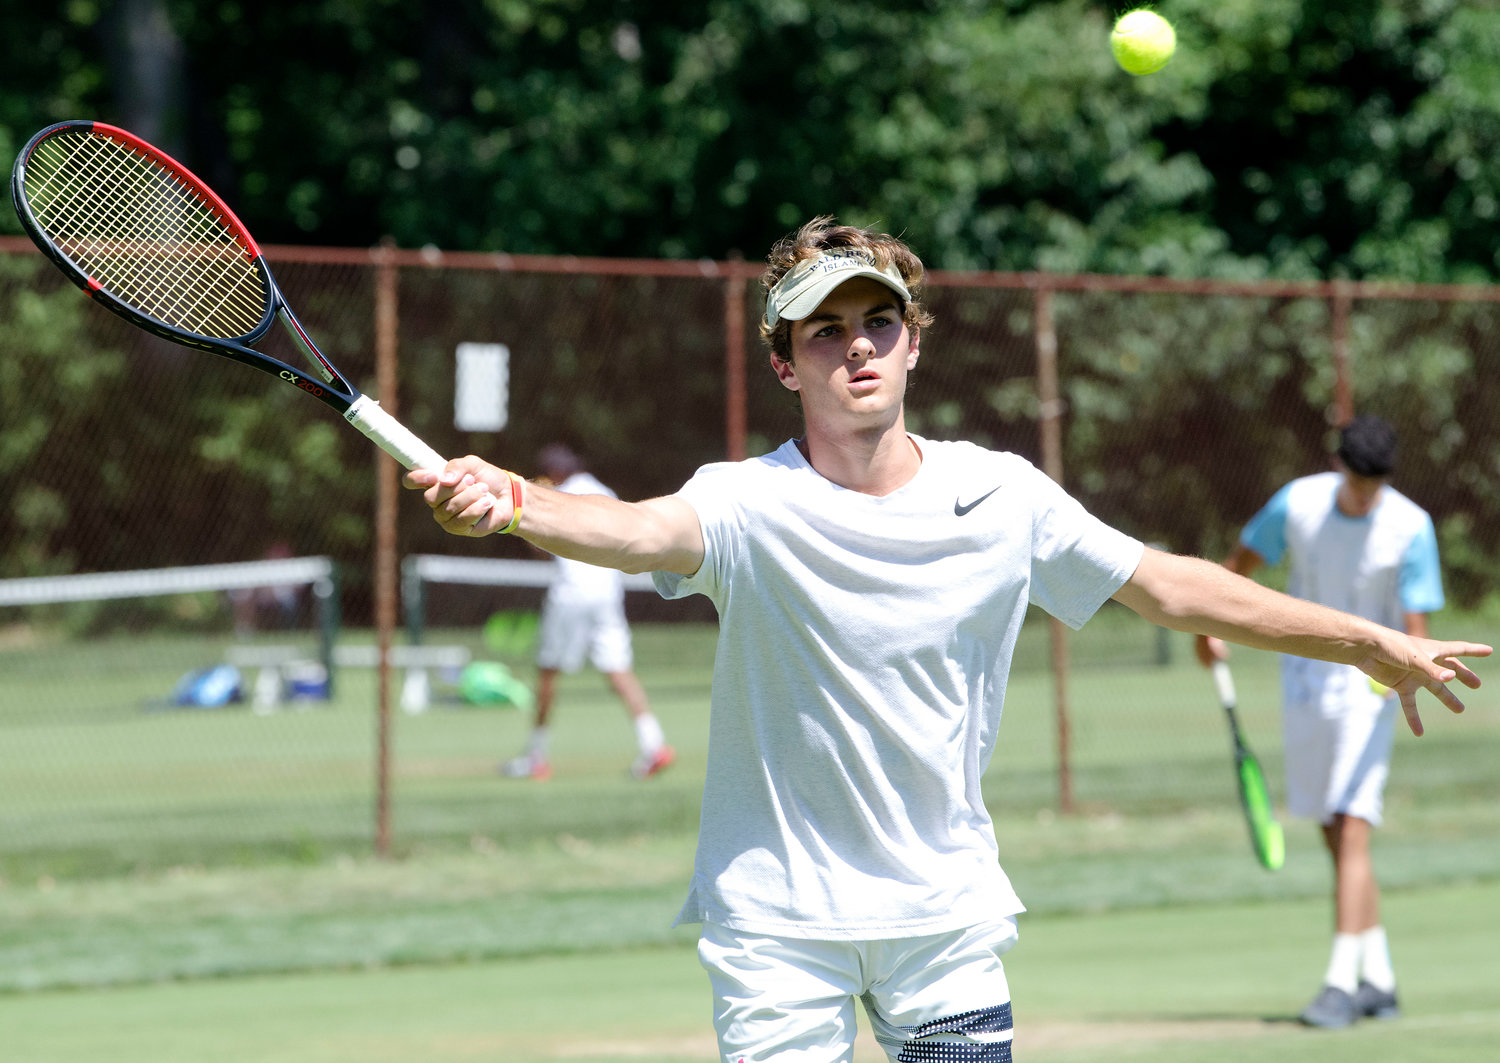 Alex Visser competes in singles at the Second Annual New England Grass Court Open Tourney.